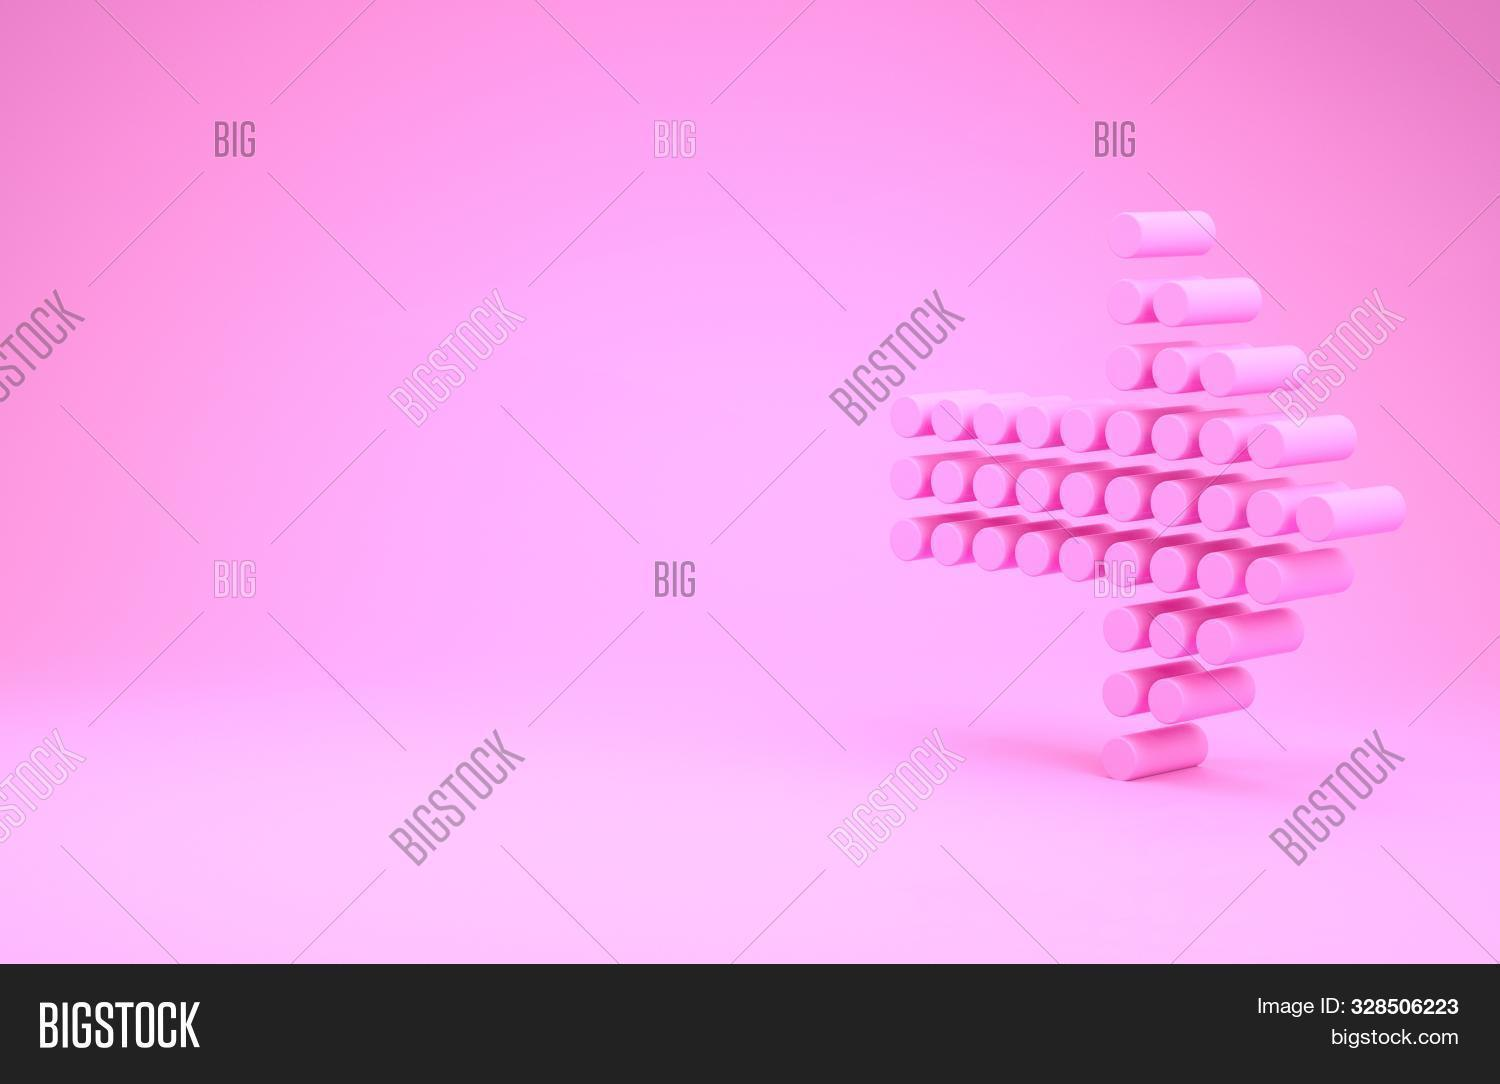 3D,abstract,arrow,art,background,banner,card,circle,color,colorful,cursor,curve,decoration,design,digital,direction,dots,dotted,effect,element,emblem,graphic,group,halftone,icon,illustration,infographic,isolated,minimal,minimalism,modern,moving,navigation,next,orientation,pictogram,pink,render,rendering,right,shape,sign,silhouette,style,symbol,texture,up,web,website